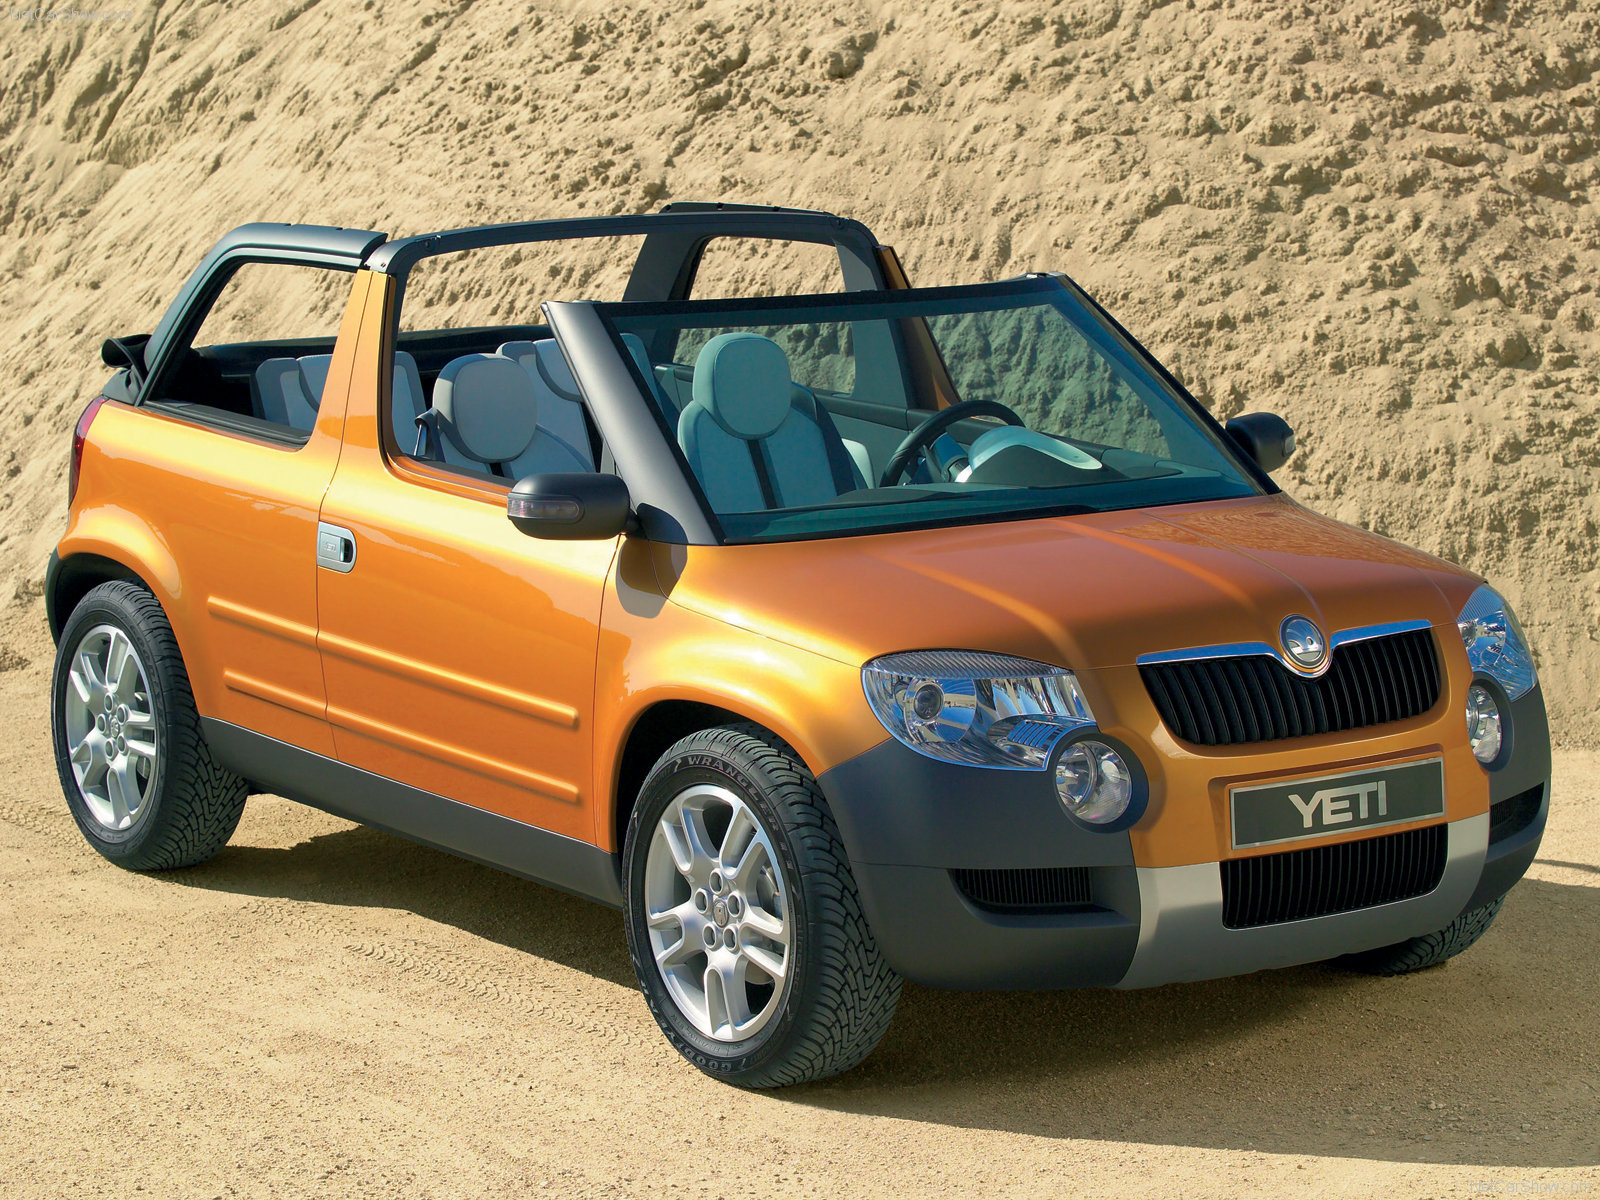 skoda yeti 2 photos photogallery with 9 pics. Black Bedroom Furniture Sets. Home Design Ideas